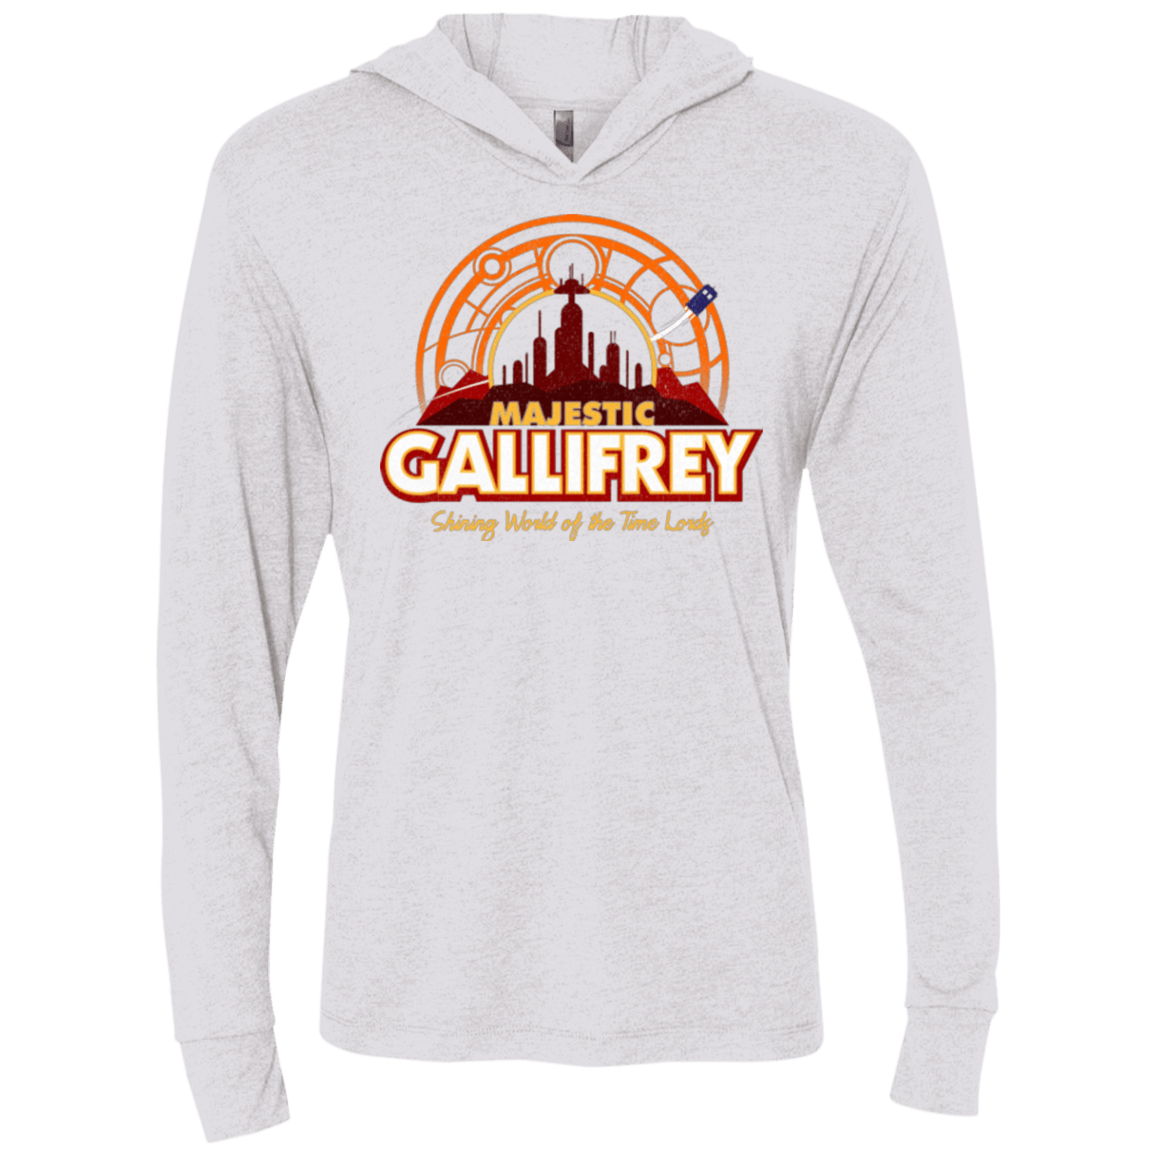 T-Shirts Heather White / X-Small Majestic Gallifrey Triblend Long Sleeve Hoodie Tee